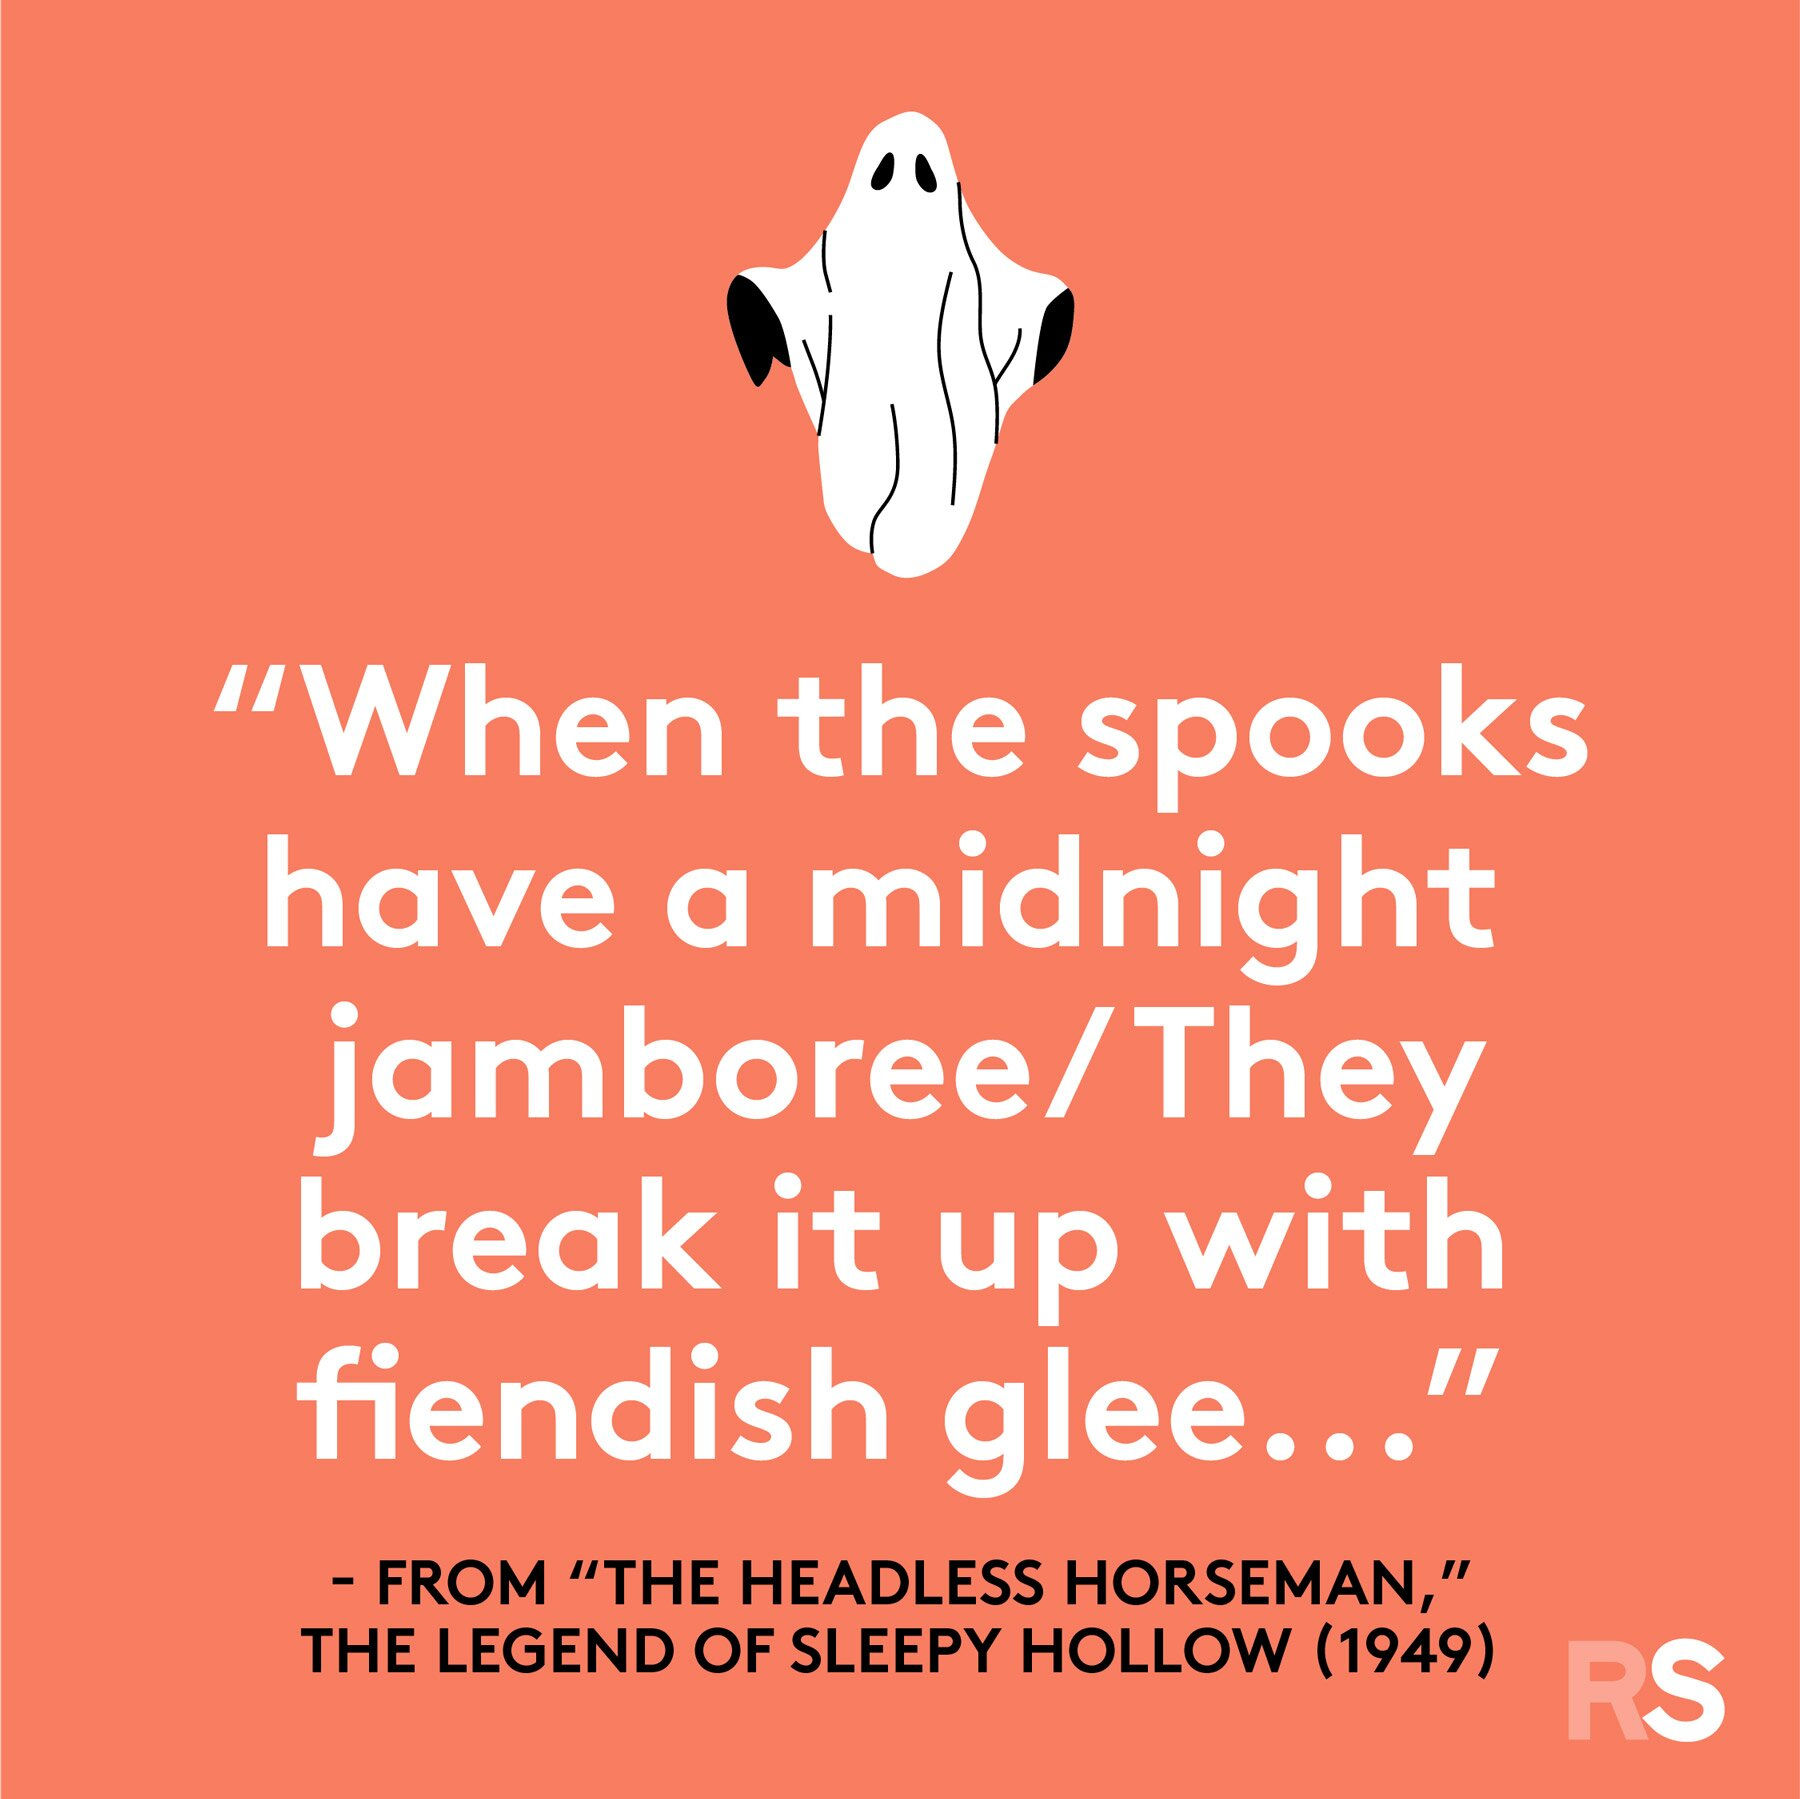 Halloween quotes, sayings, phrases - Headless horseman quote